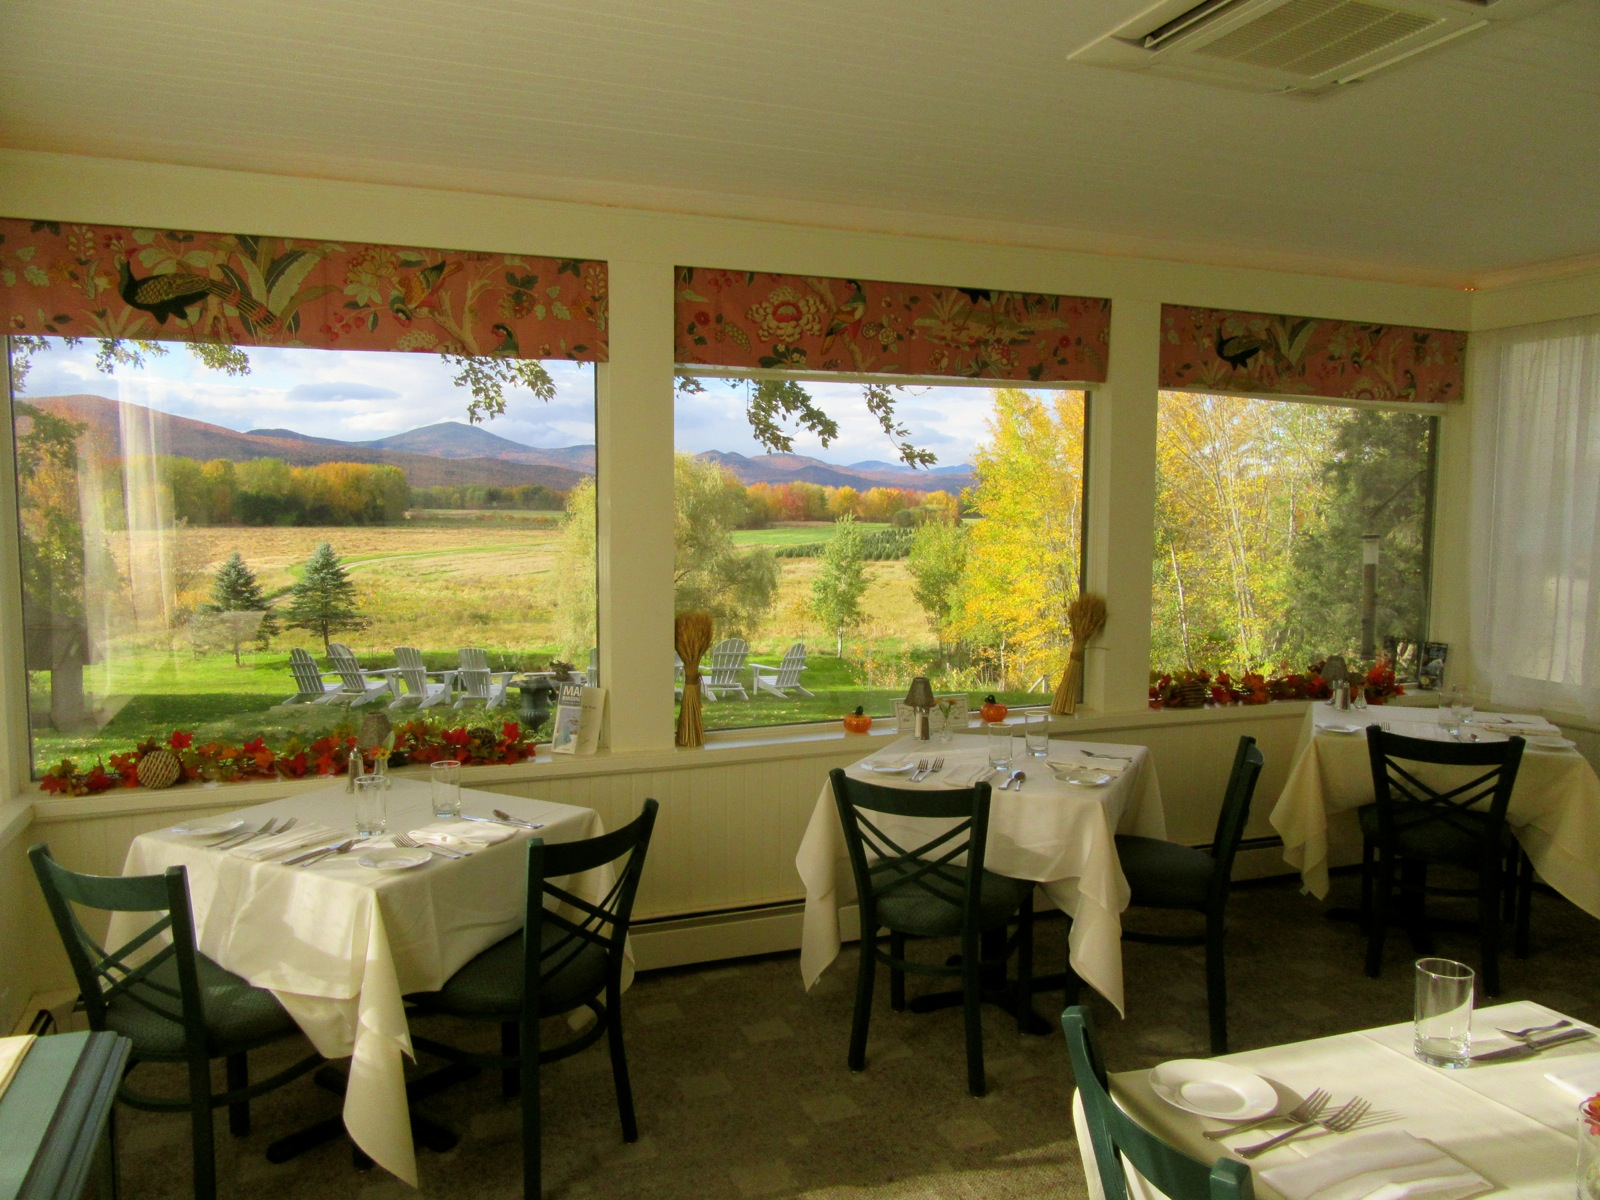 Fryeburg me in the foothills of nh white mountains oxford house inn restaurant fryeburg me kristyandbryce Gallery